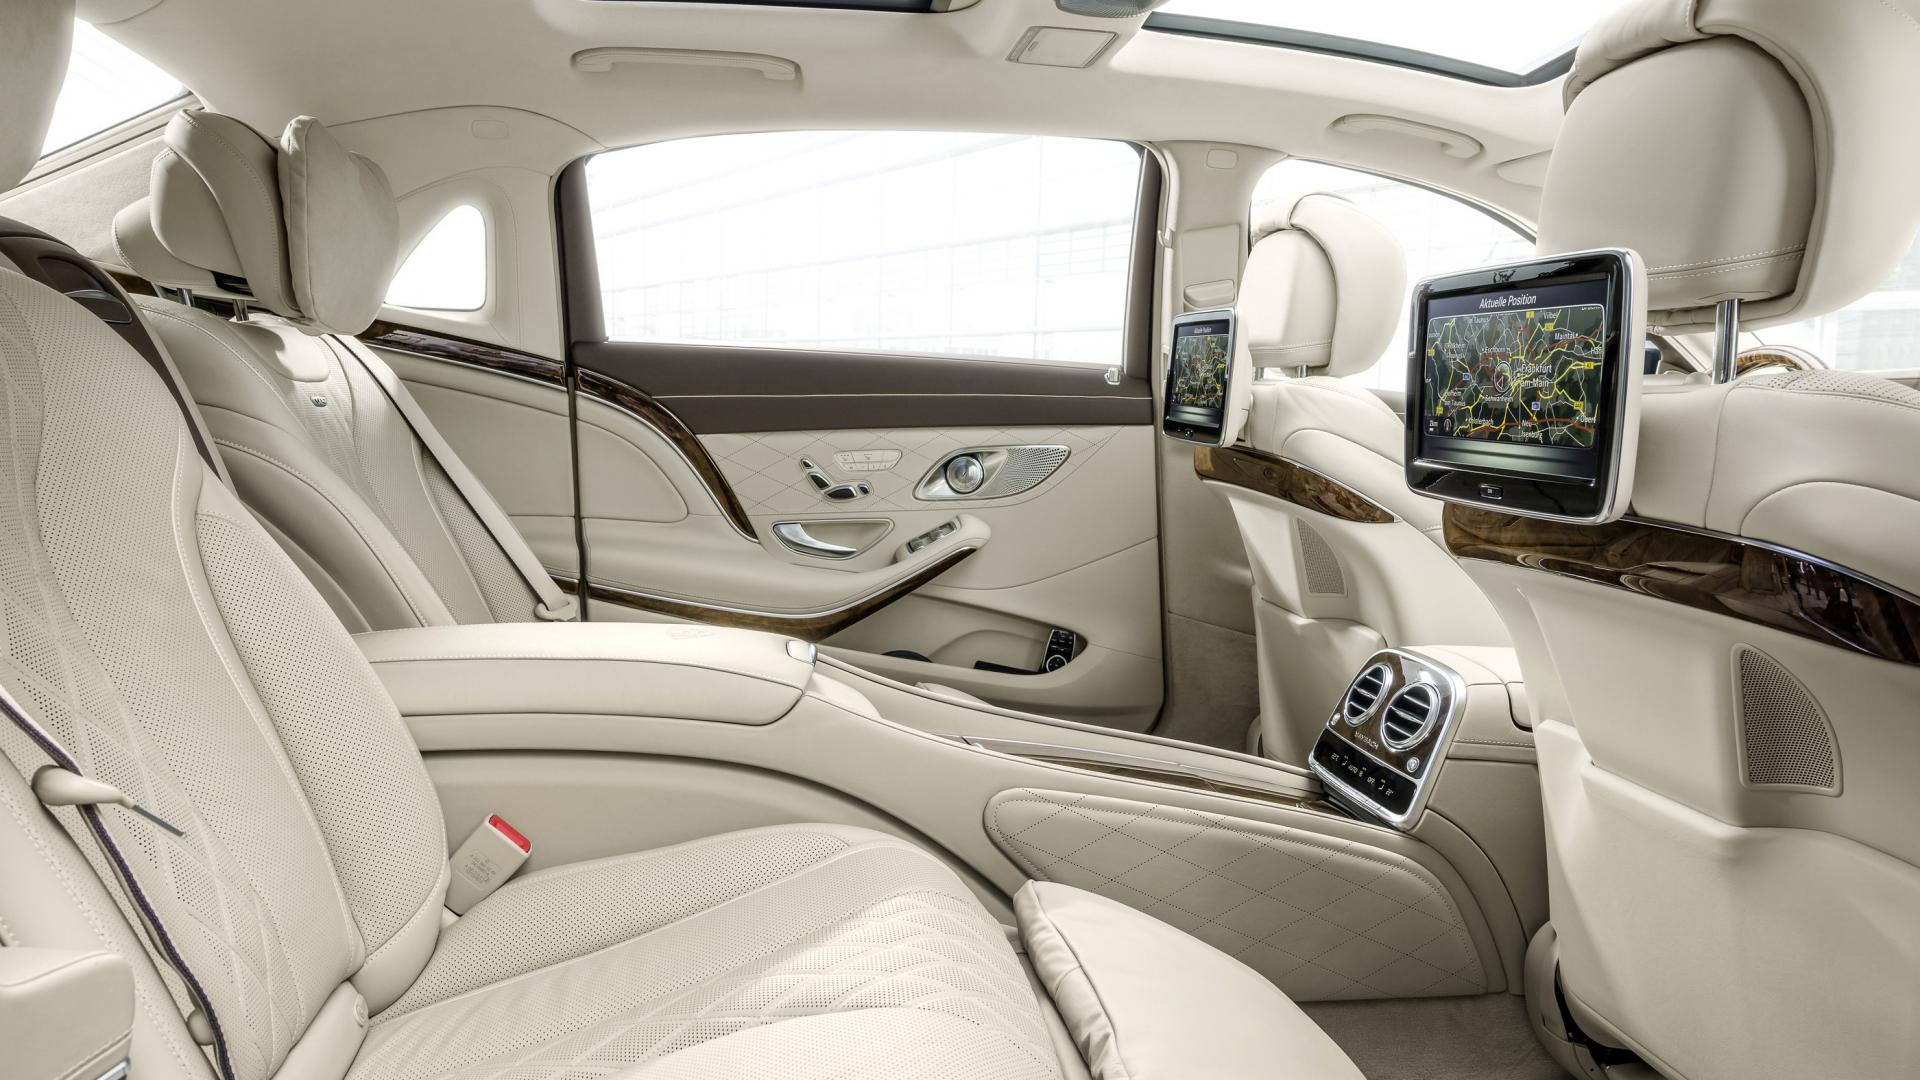 Nuova Mercedes Maybach Classe S